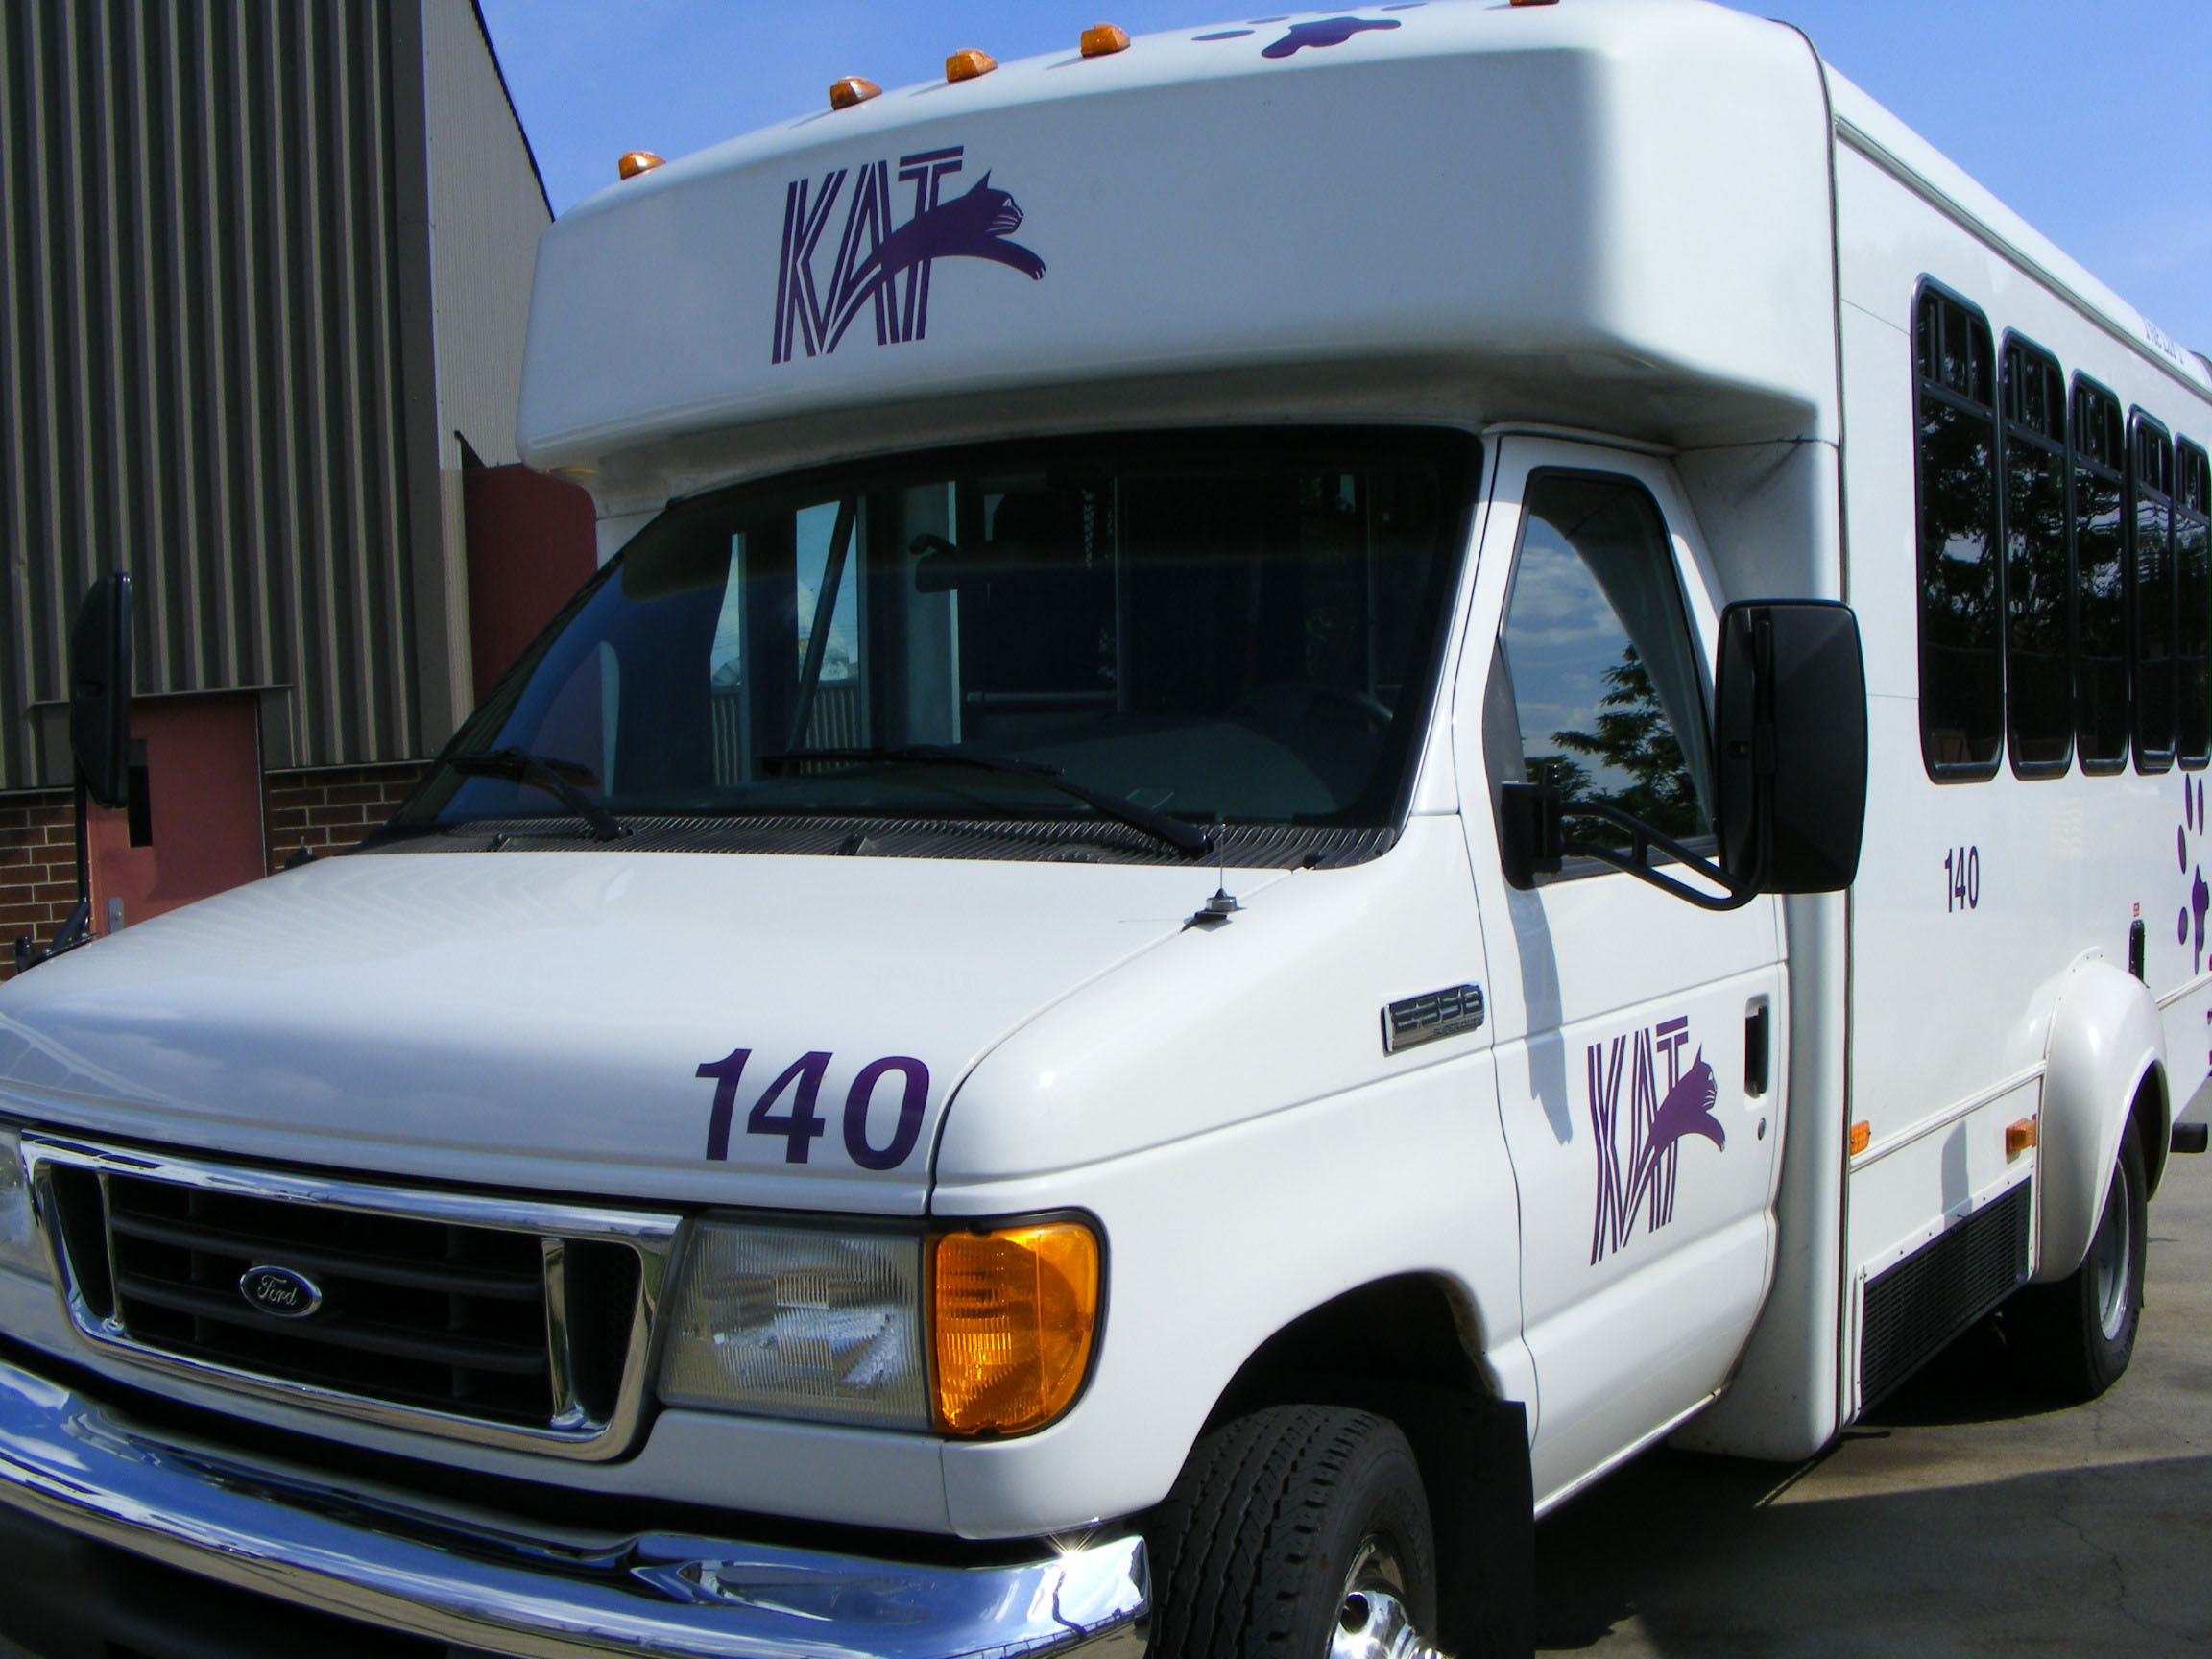 Knoxville Area Transit Ford E350 140